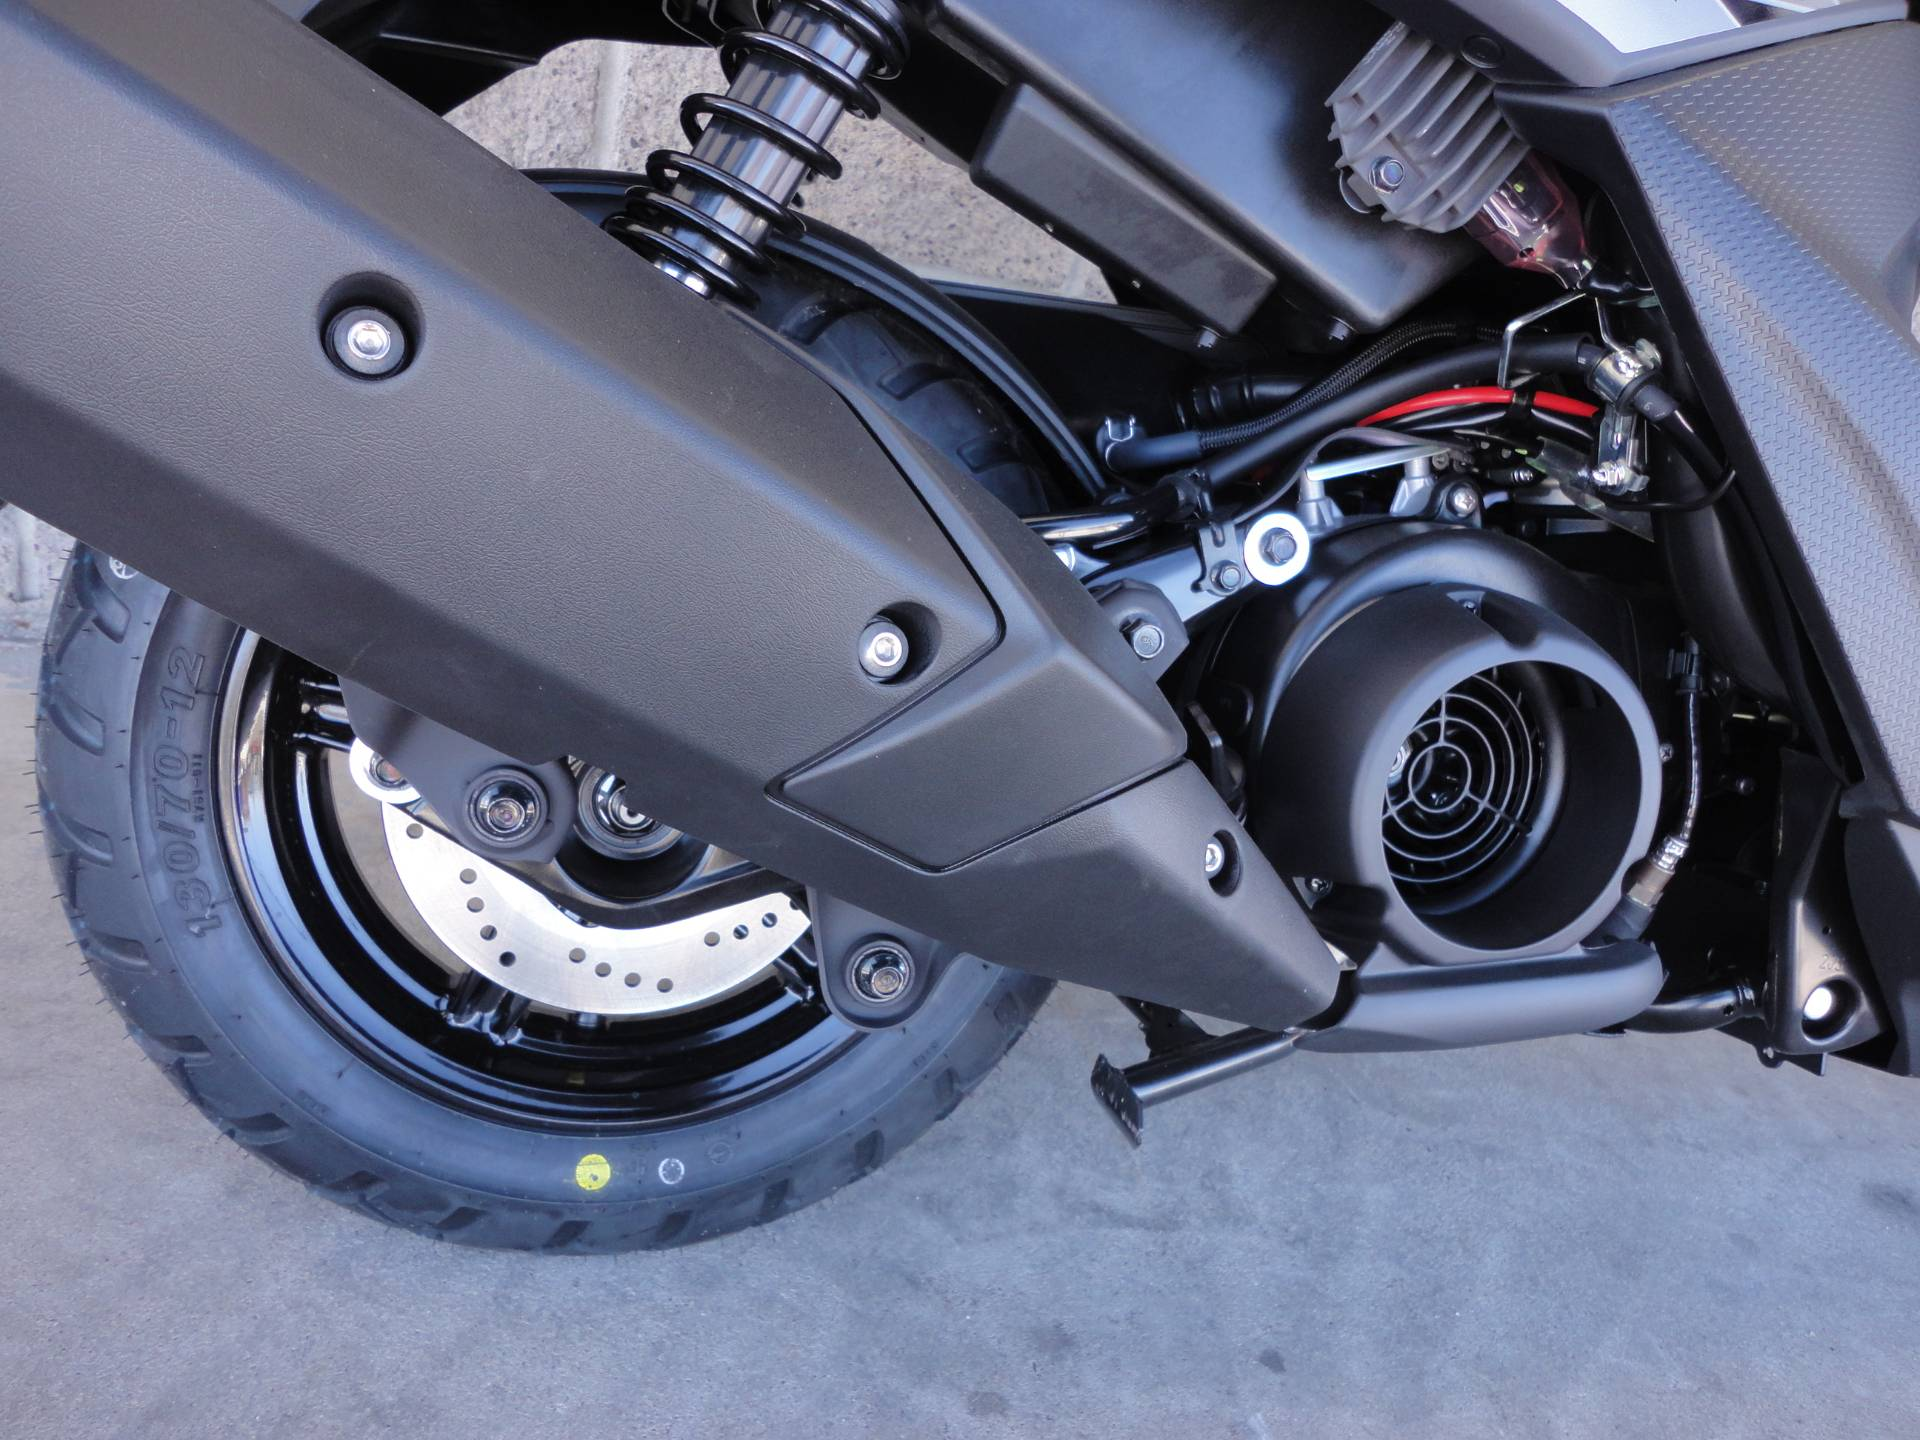 2020 Yamaha Zuma 125 in Denver, Colorado - Photo 16